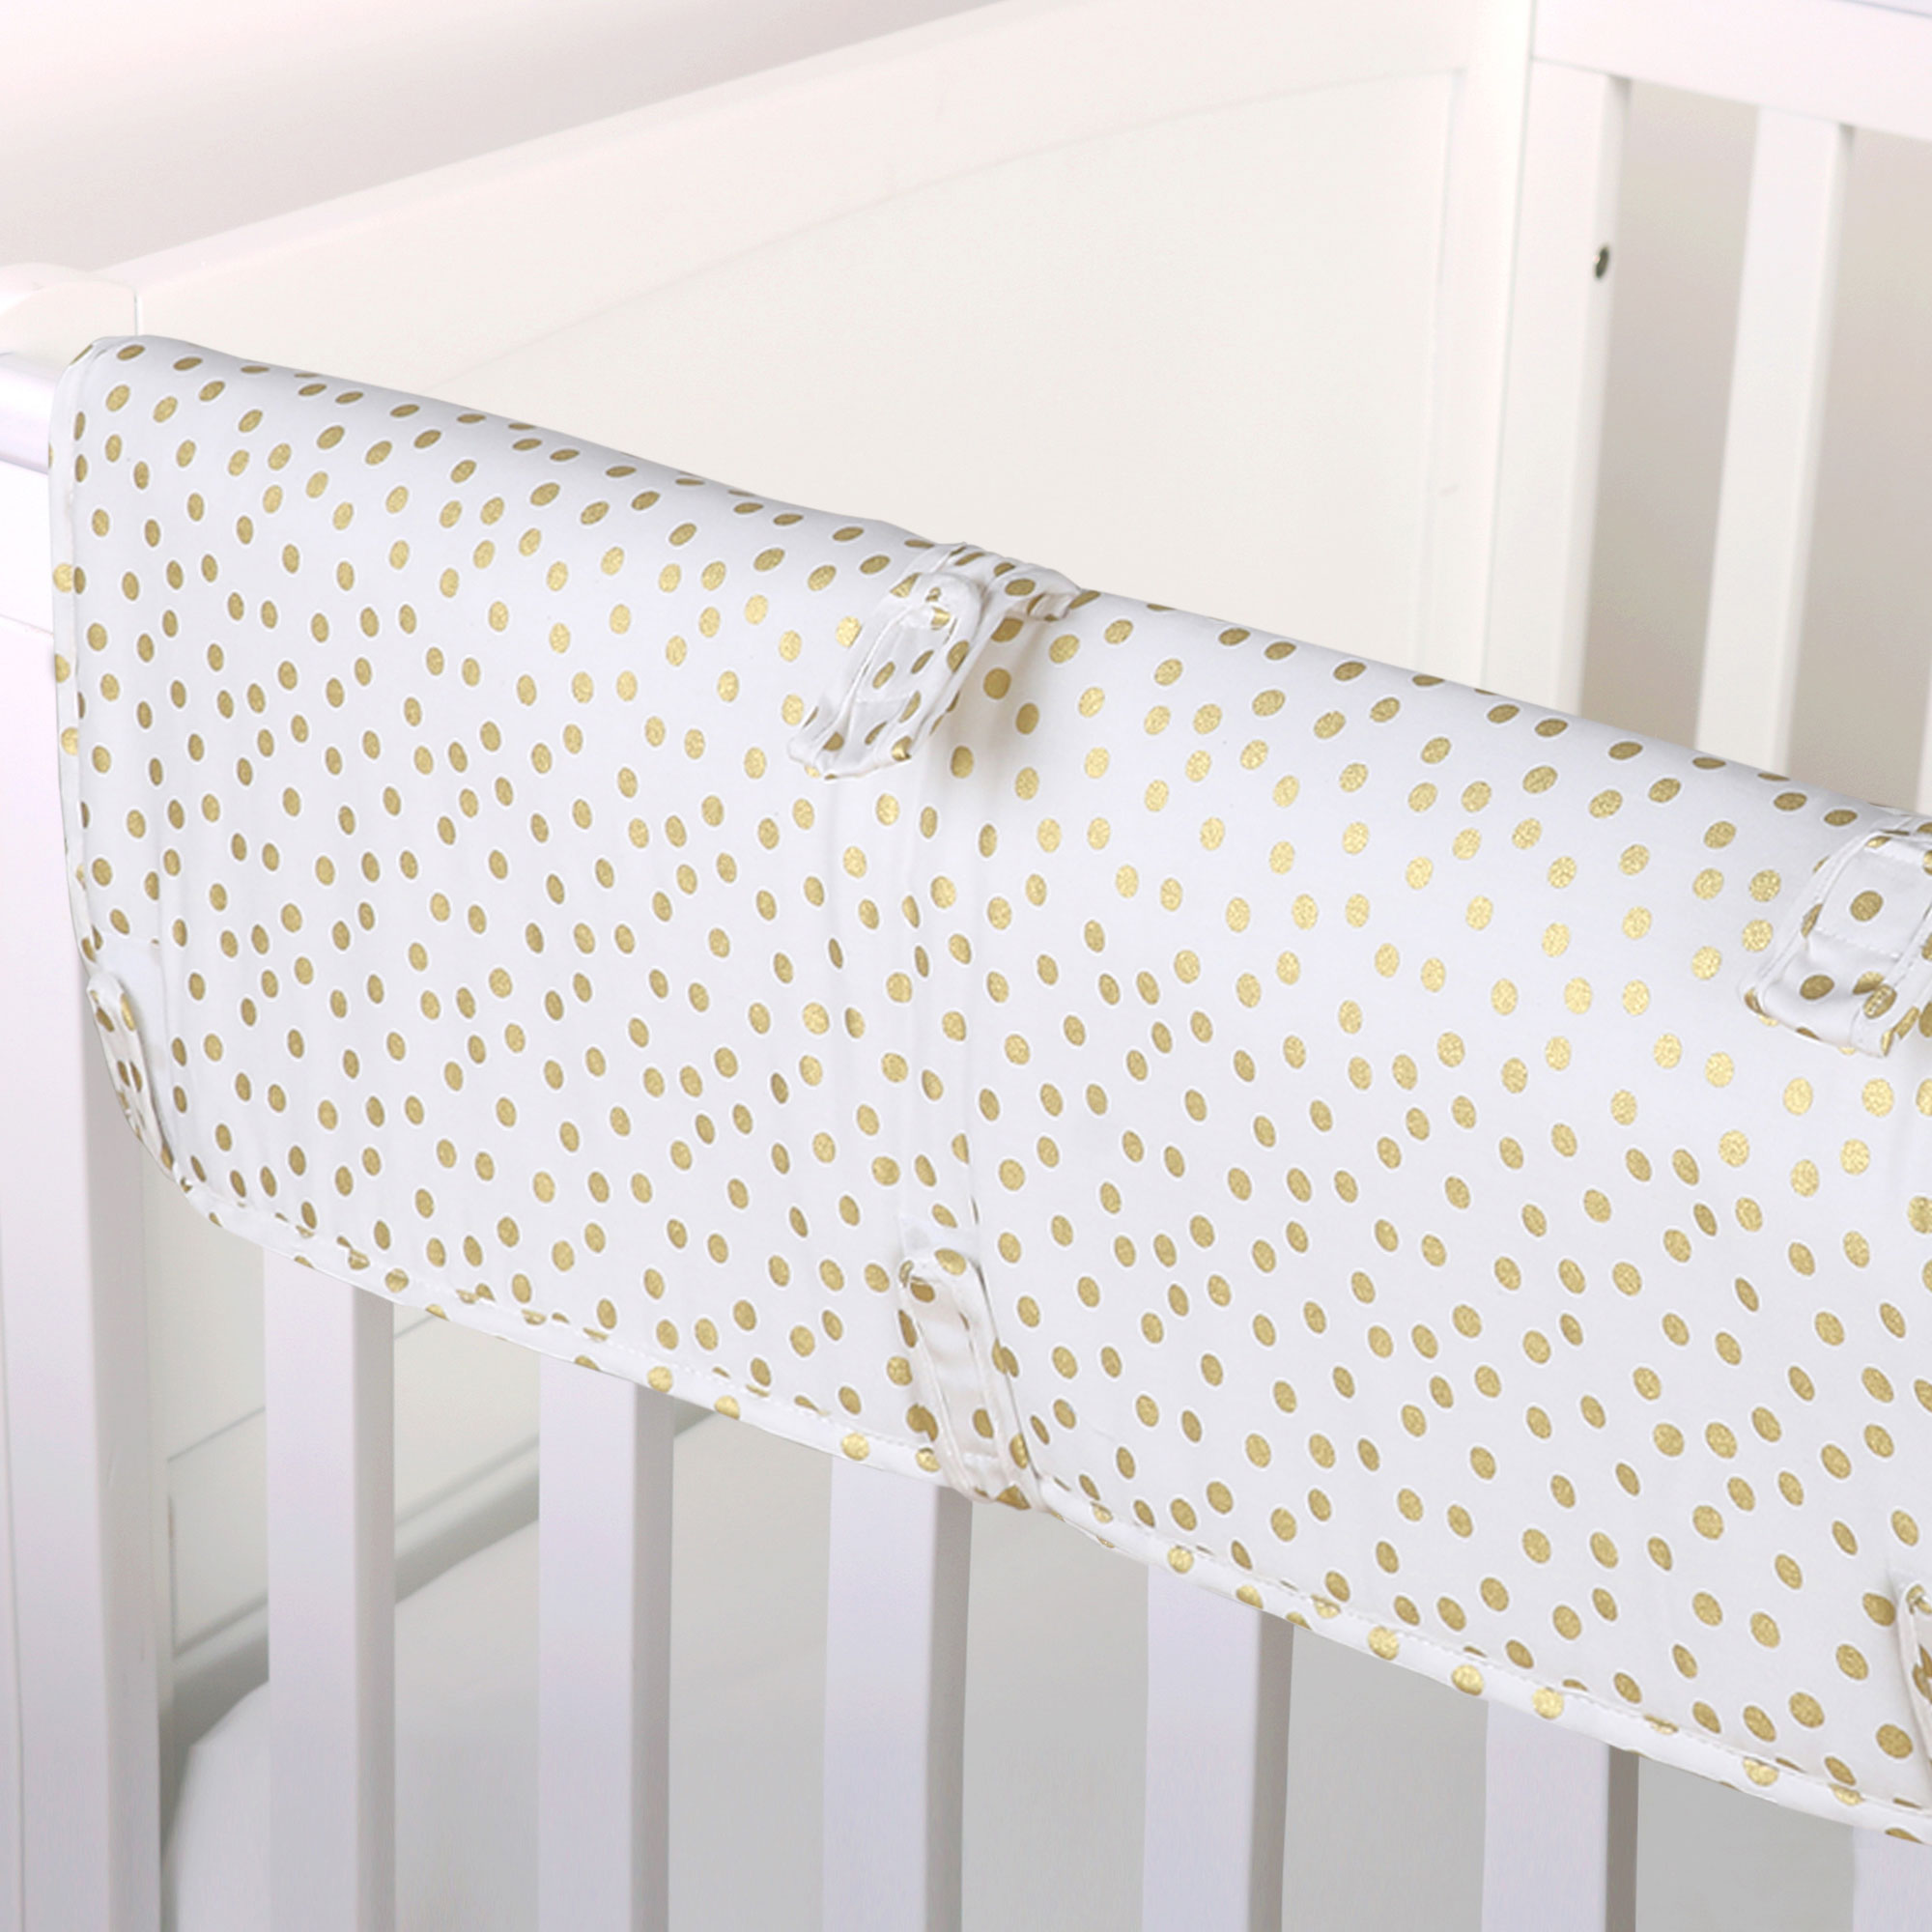 The Peanut Shell Baby Crib Rail Guard - Metallic Gold Confetti Dot Print - 100% Cotton Sateen Cover, Polyester Fill